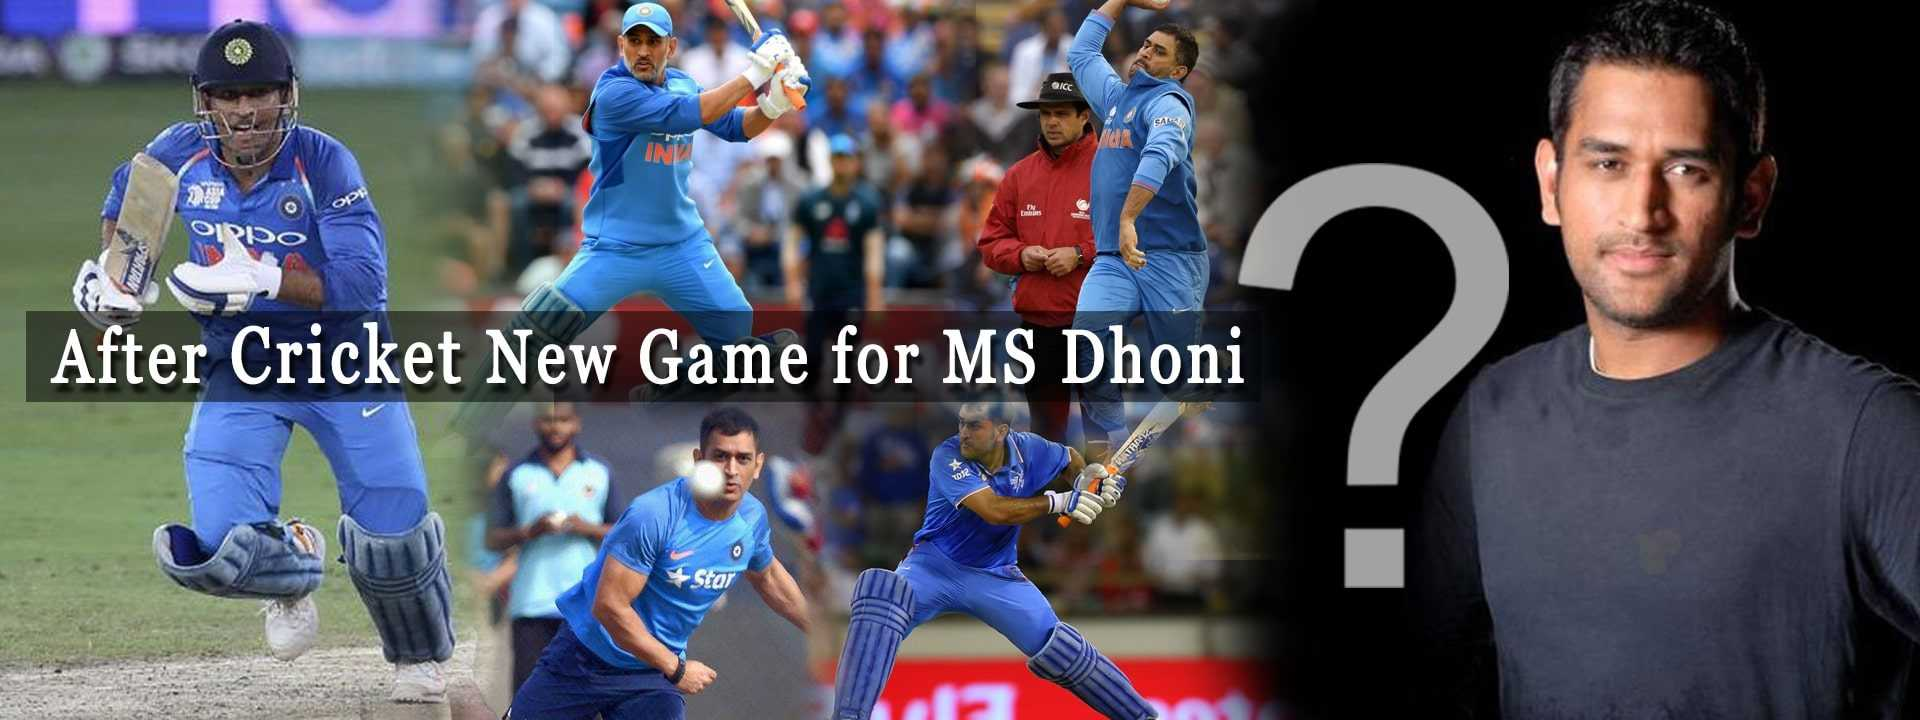 Ms-dhoni-football